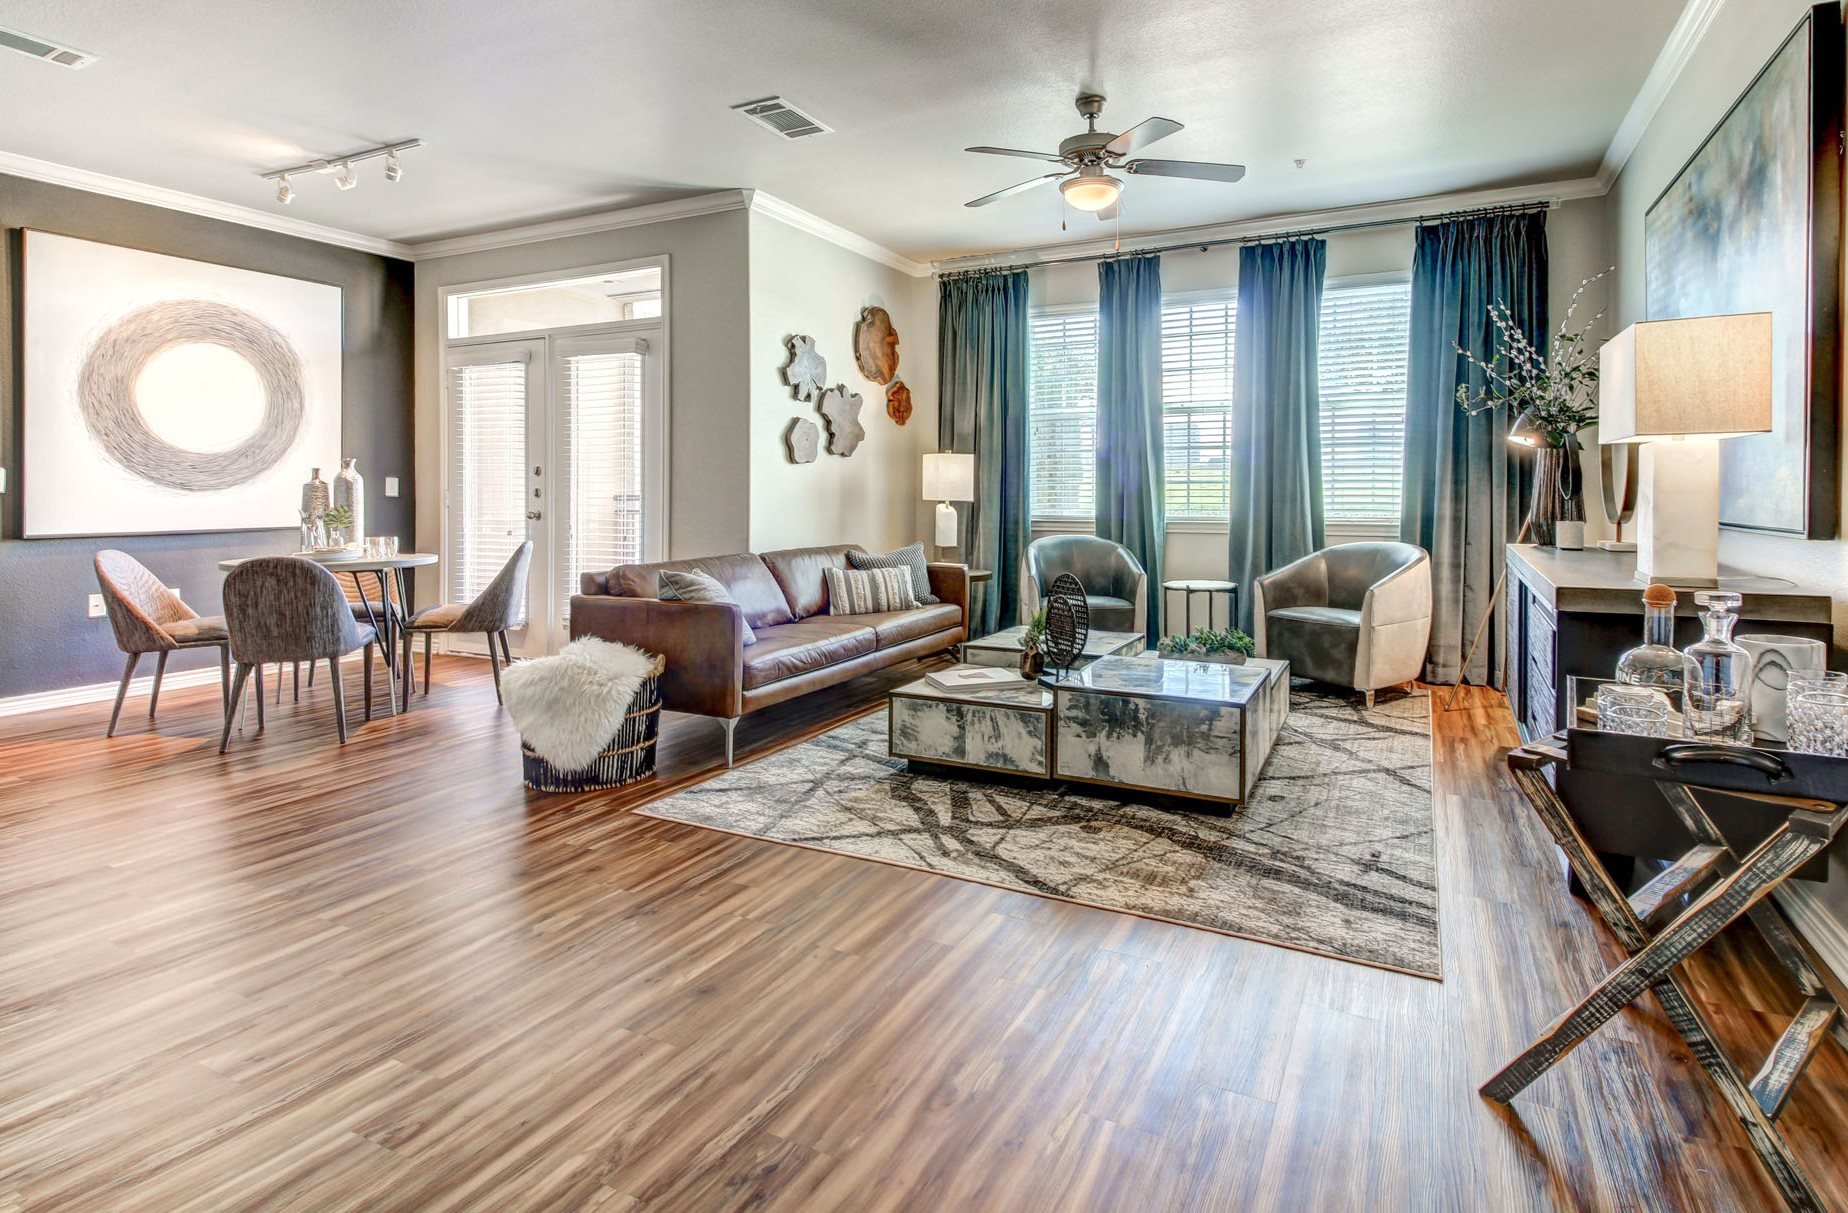 Beautiful open, living room and dining room with faux wood floors and natural light.